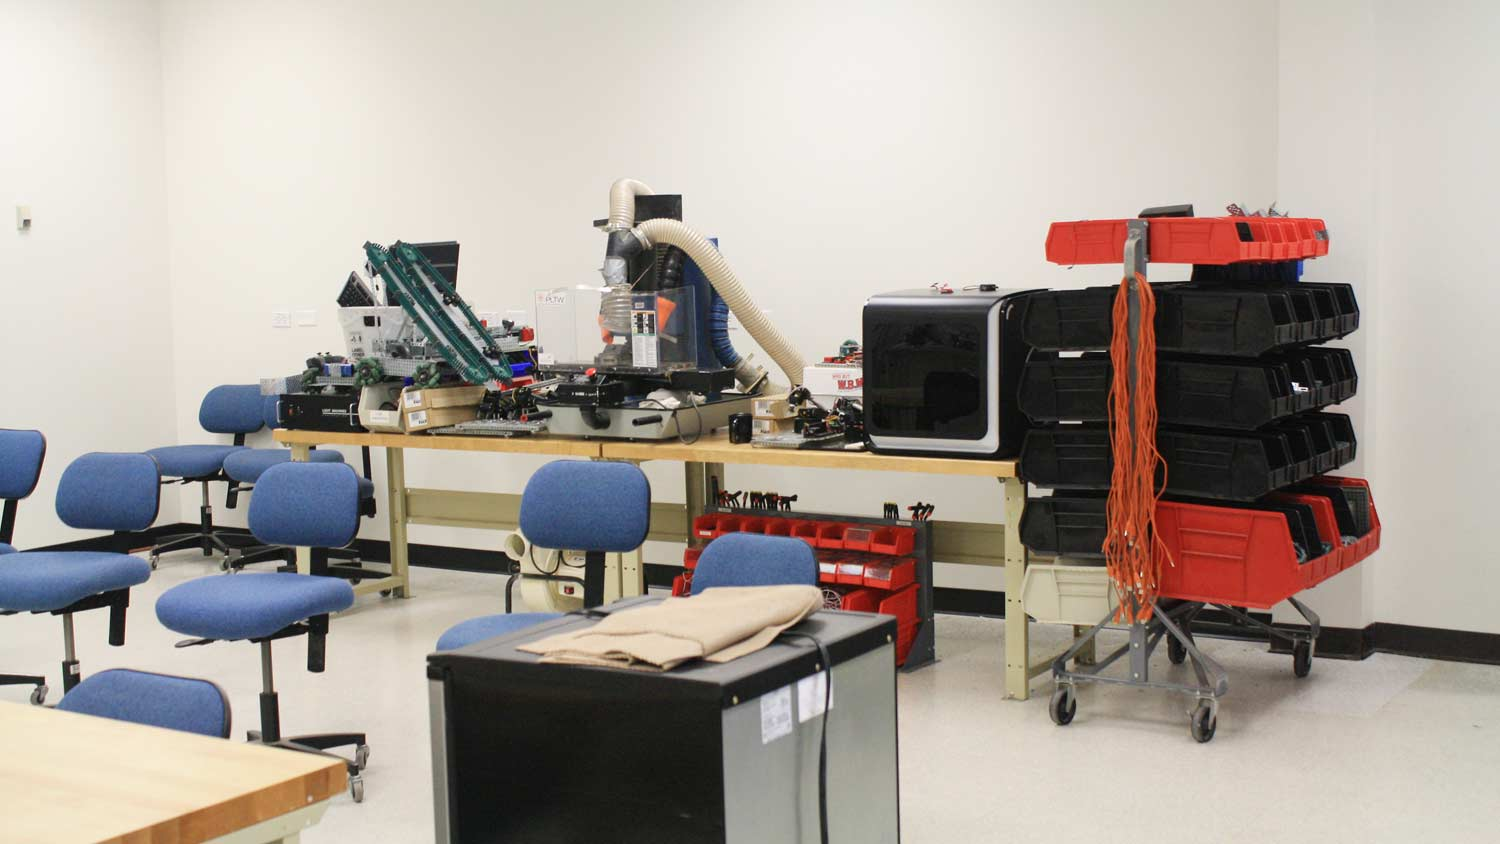 Lab with CNC machines on a table